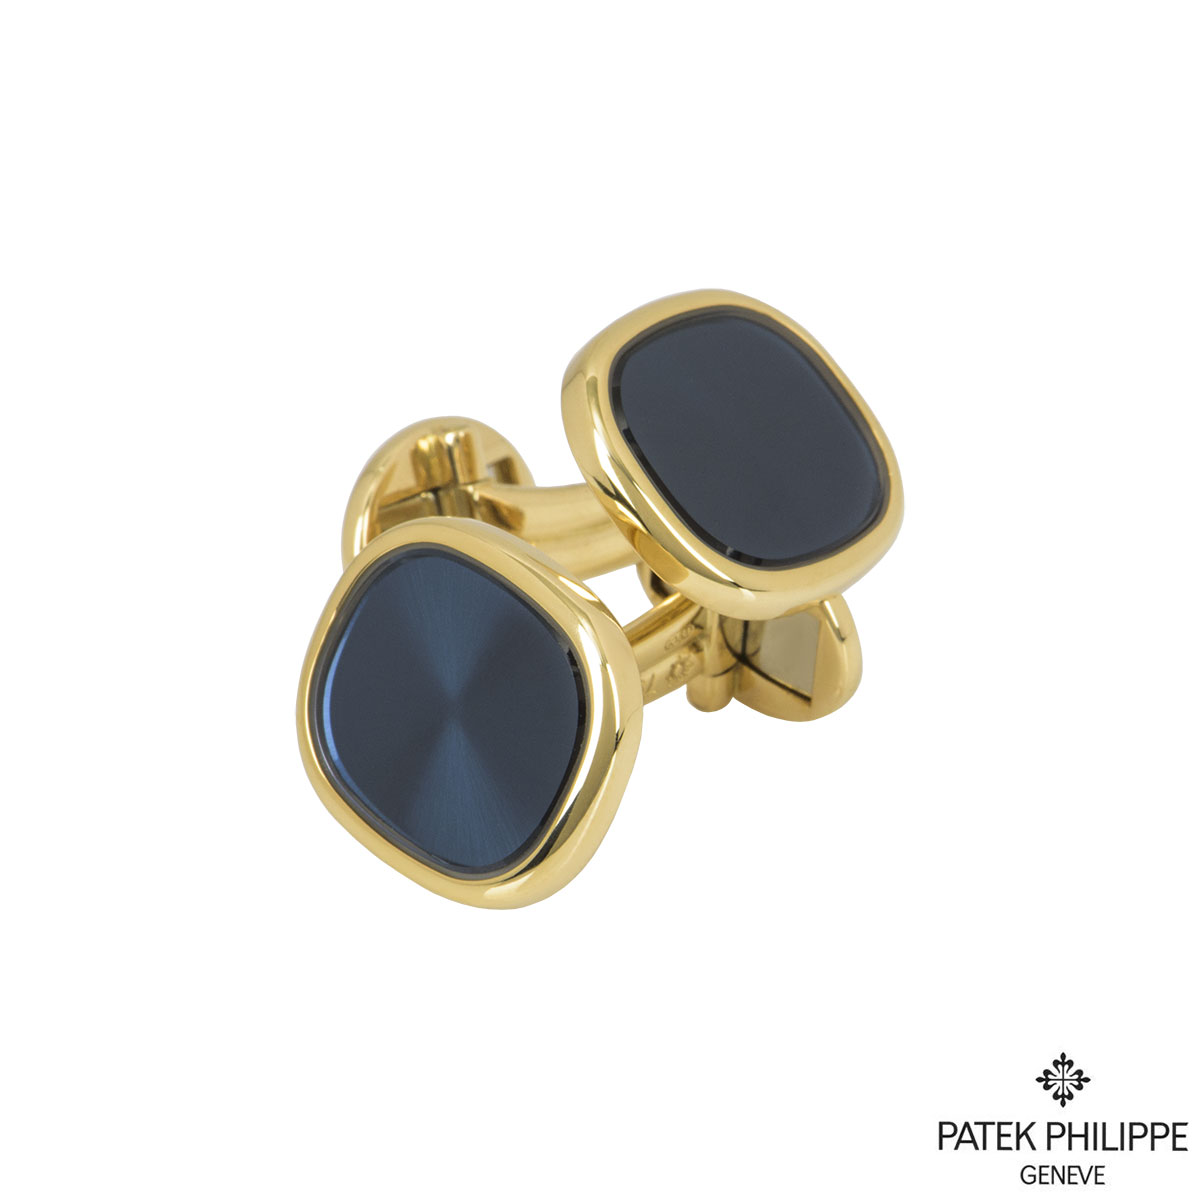 Patek Philippe Yellow Gold Ellipse Cufflinks